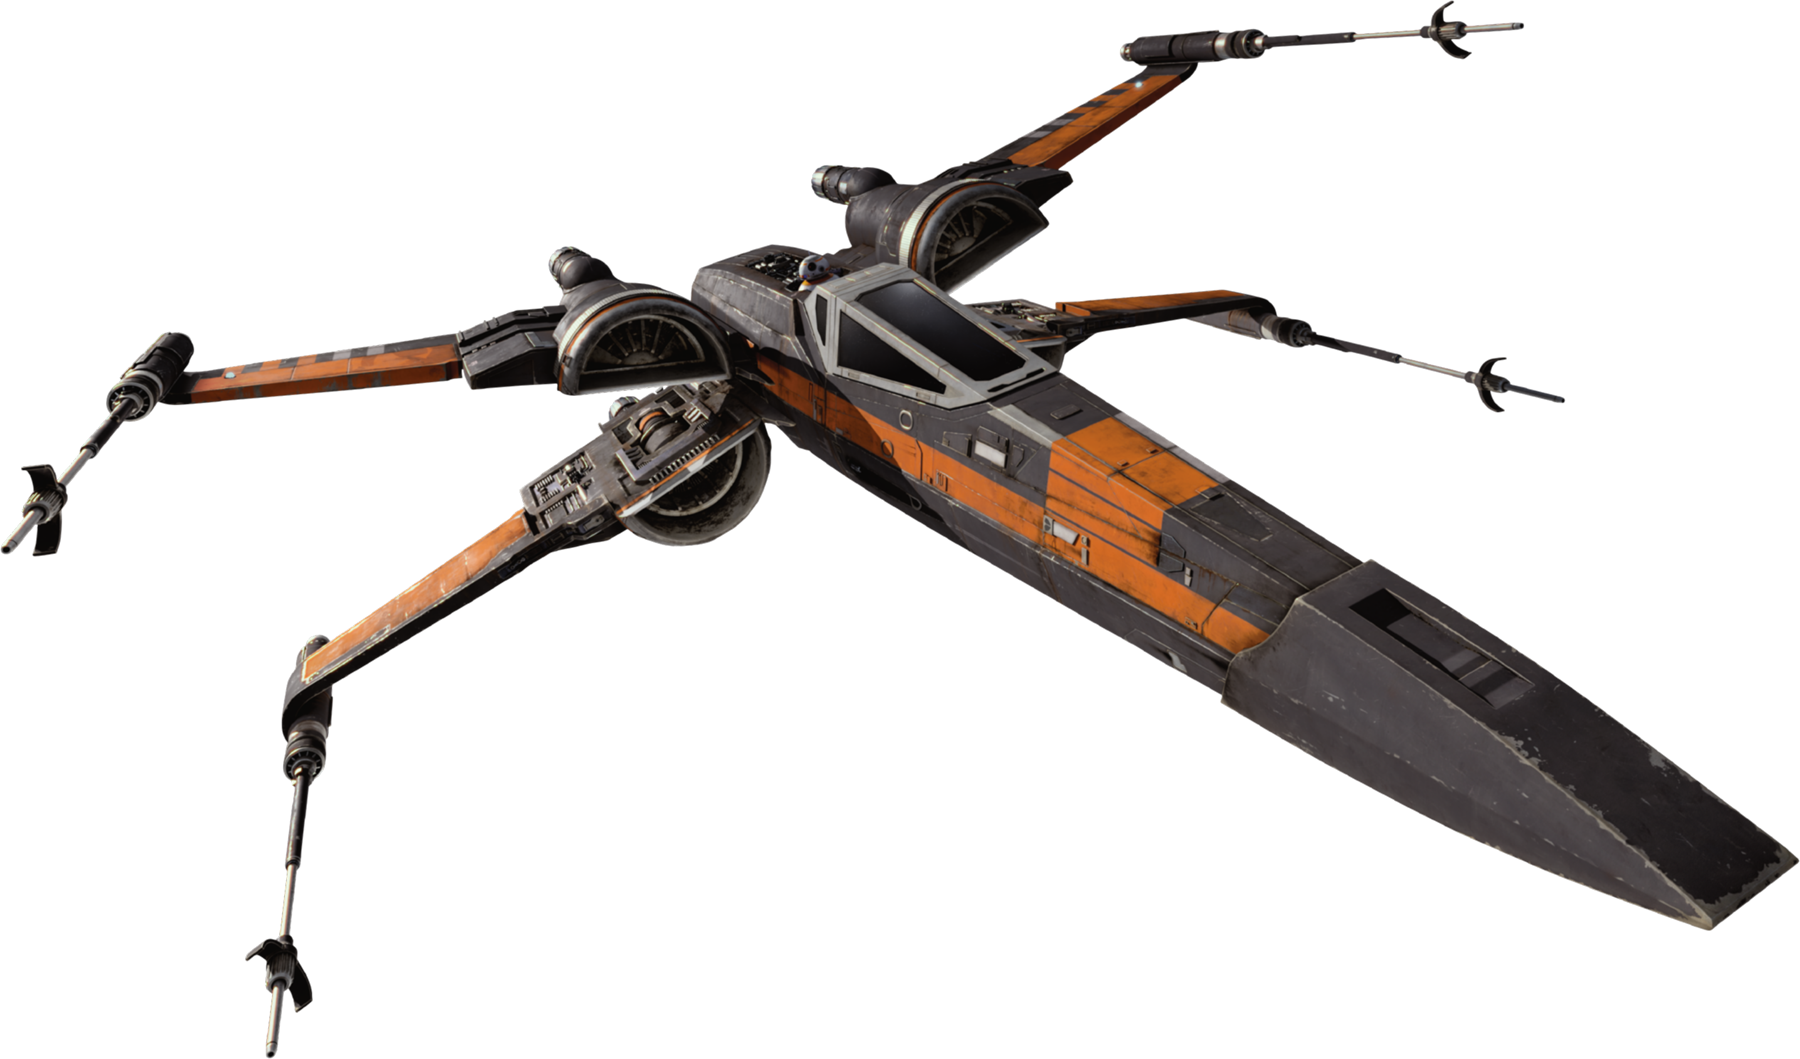 Studio scale x-wing red 5 scratch built by cory harvey (mensaboy)